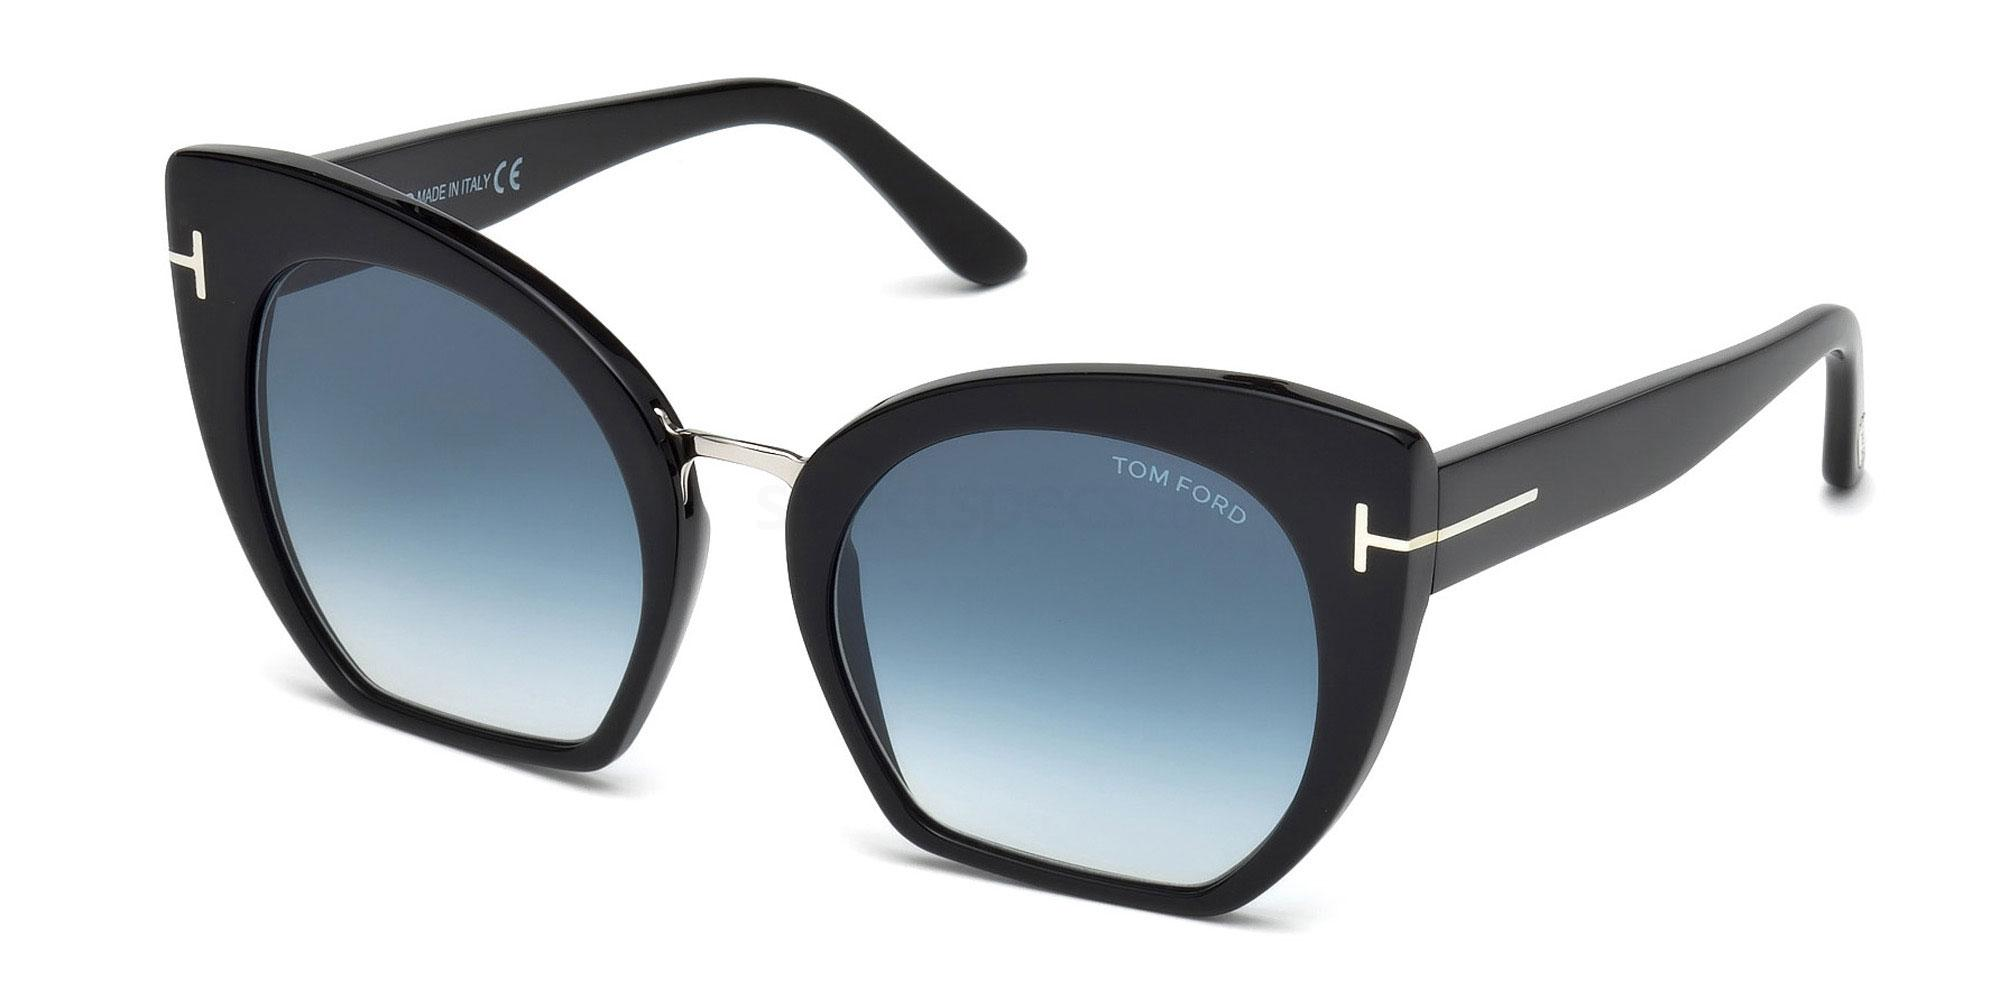 01W FT0553 , Tom Ford